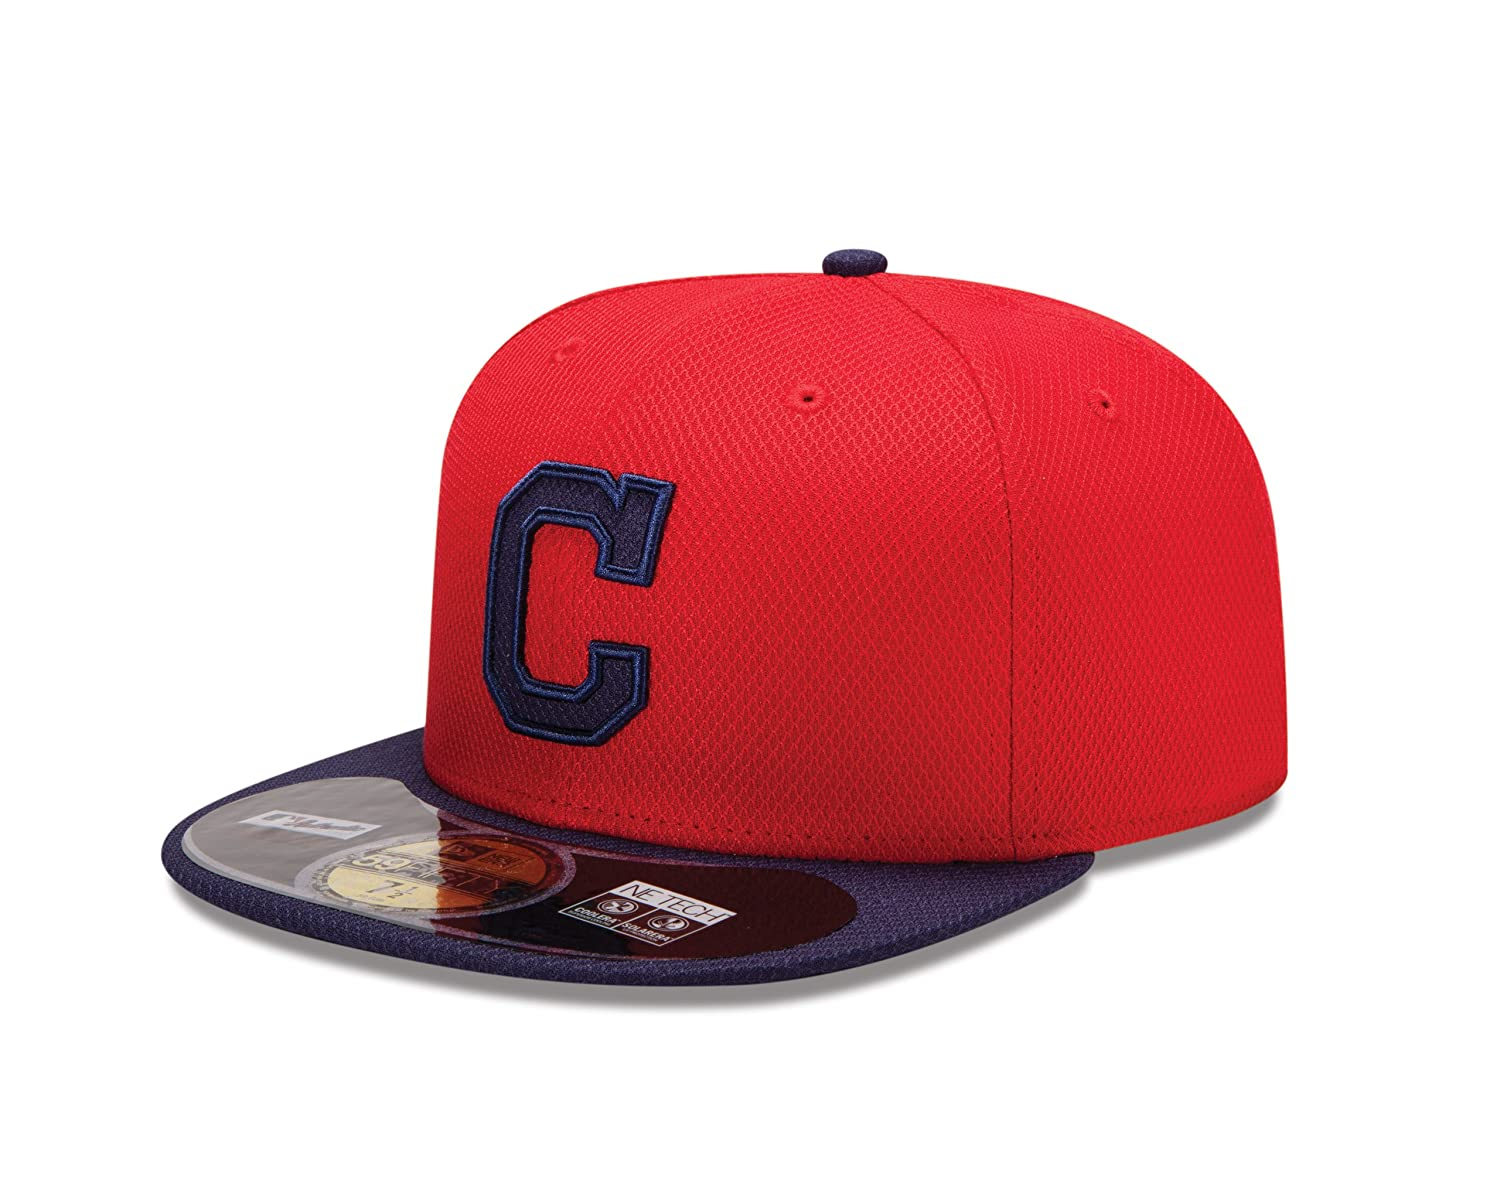 309af6a4bf333 Amazon.com   New Era MLB Home Diamond Era 59FIFTY Fitted Cap   Sports    Outdoors